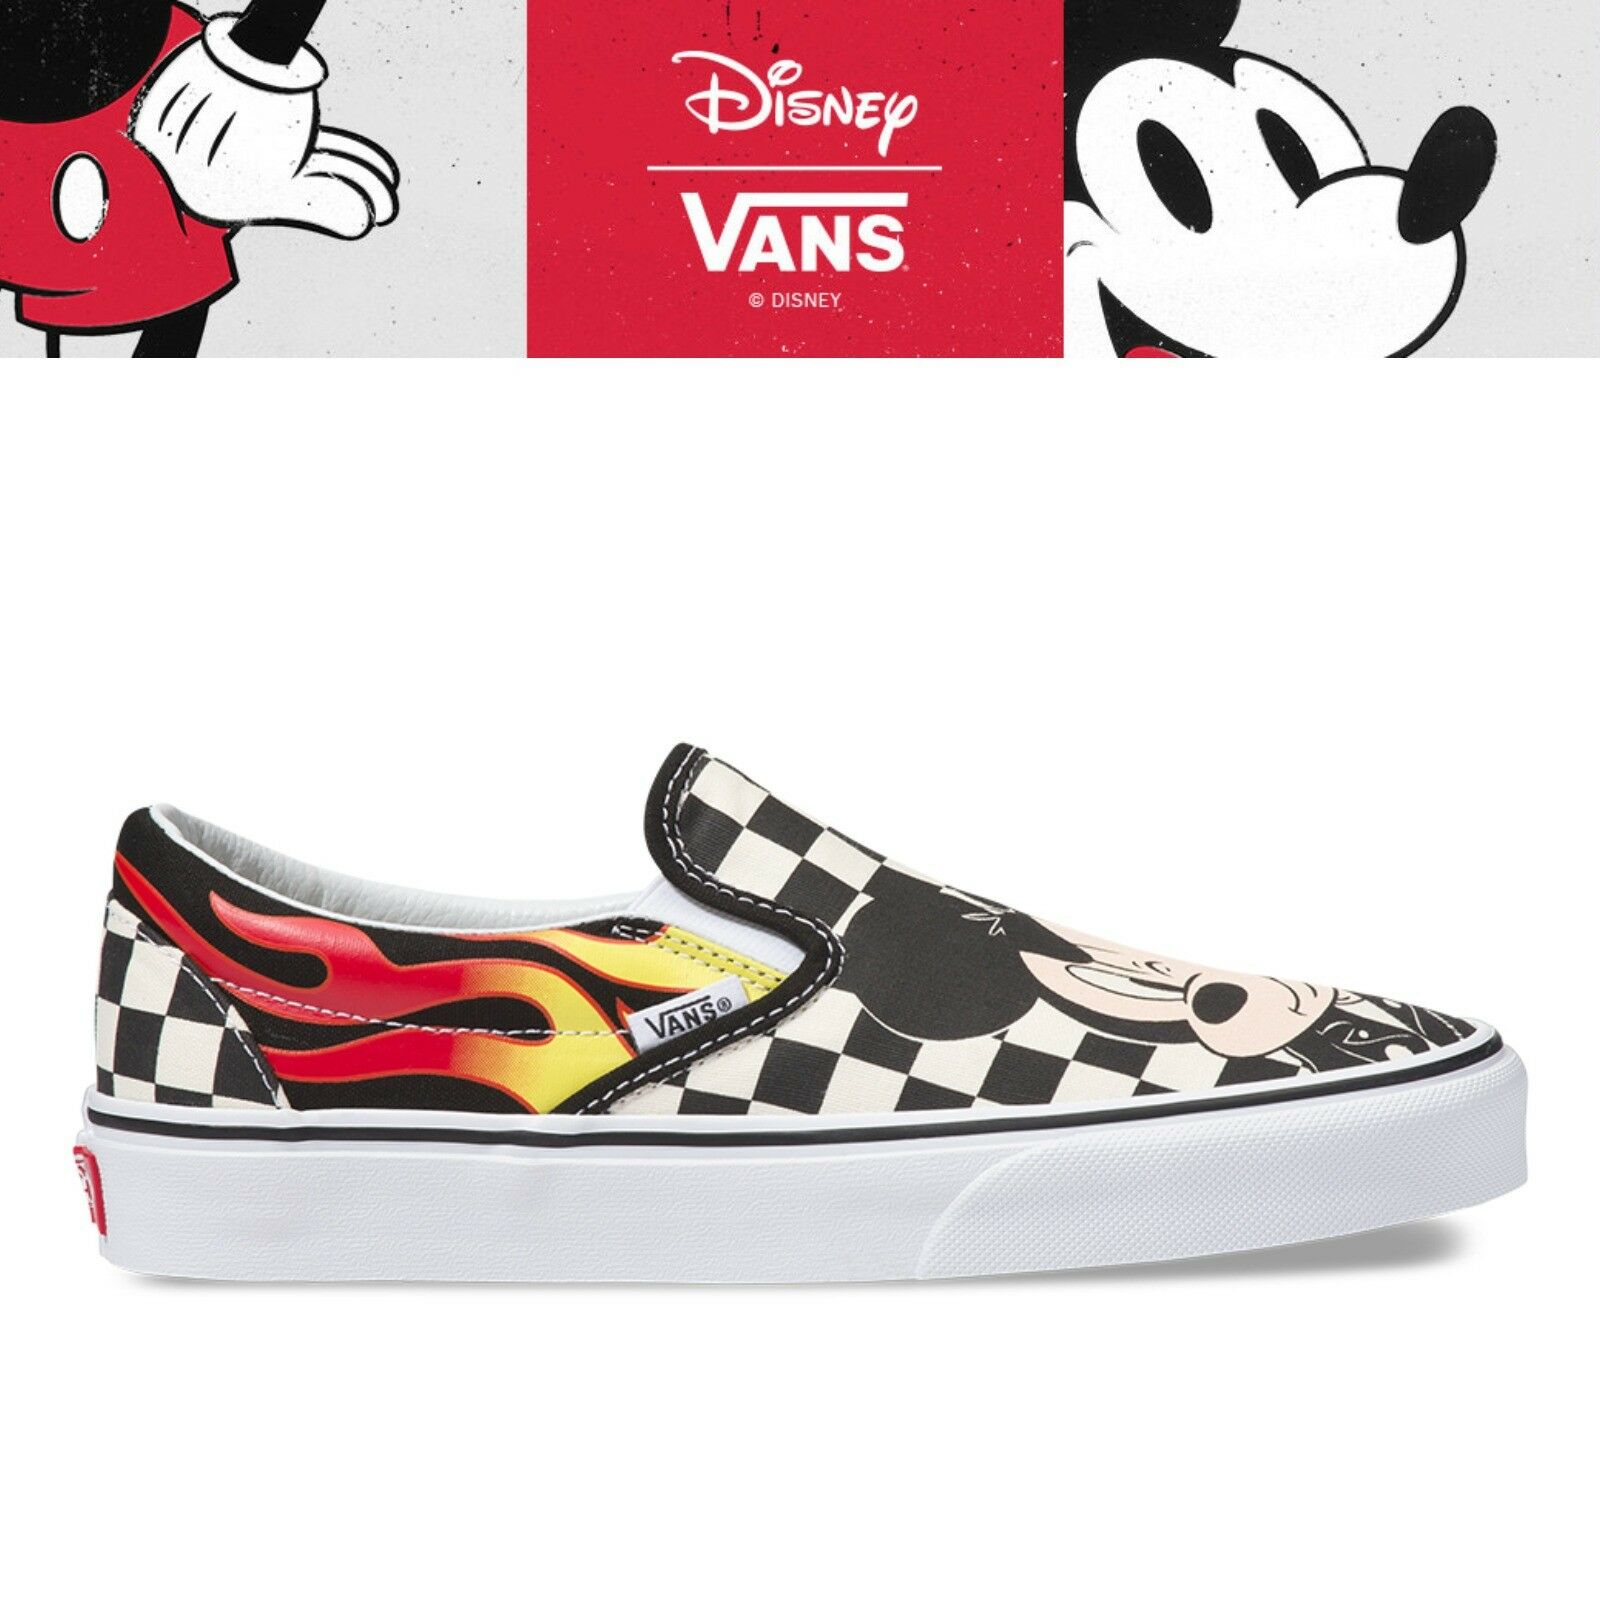 New VANS X DISNEY Slip-On Mickey Mouse 90th Collection Unisex Turnschuhe - Flame